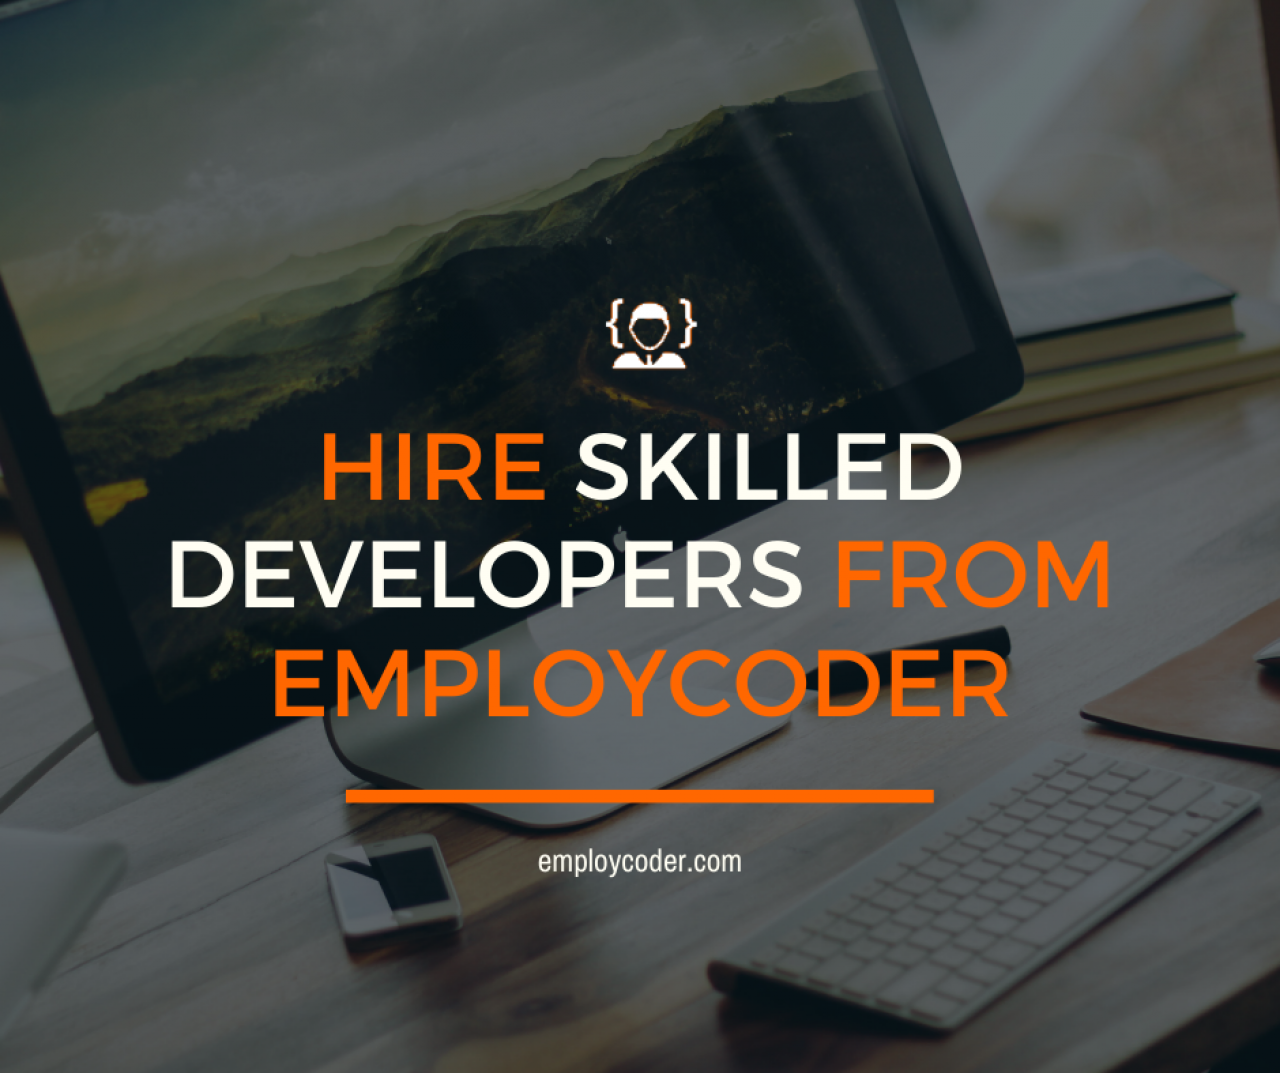 Hire skilled Developers From Employcoder